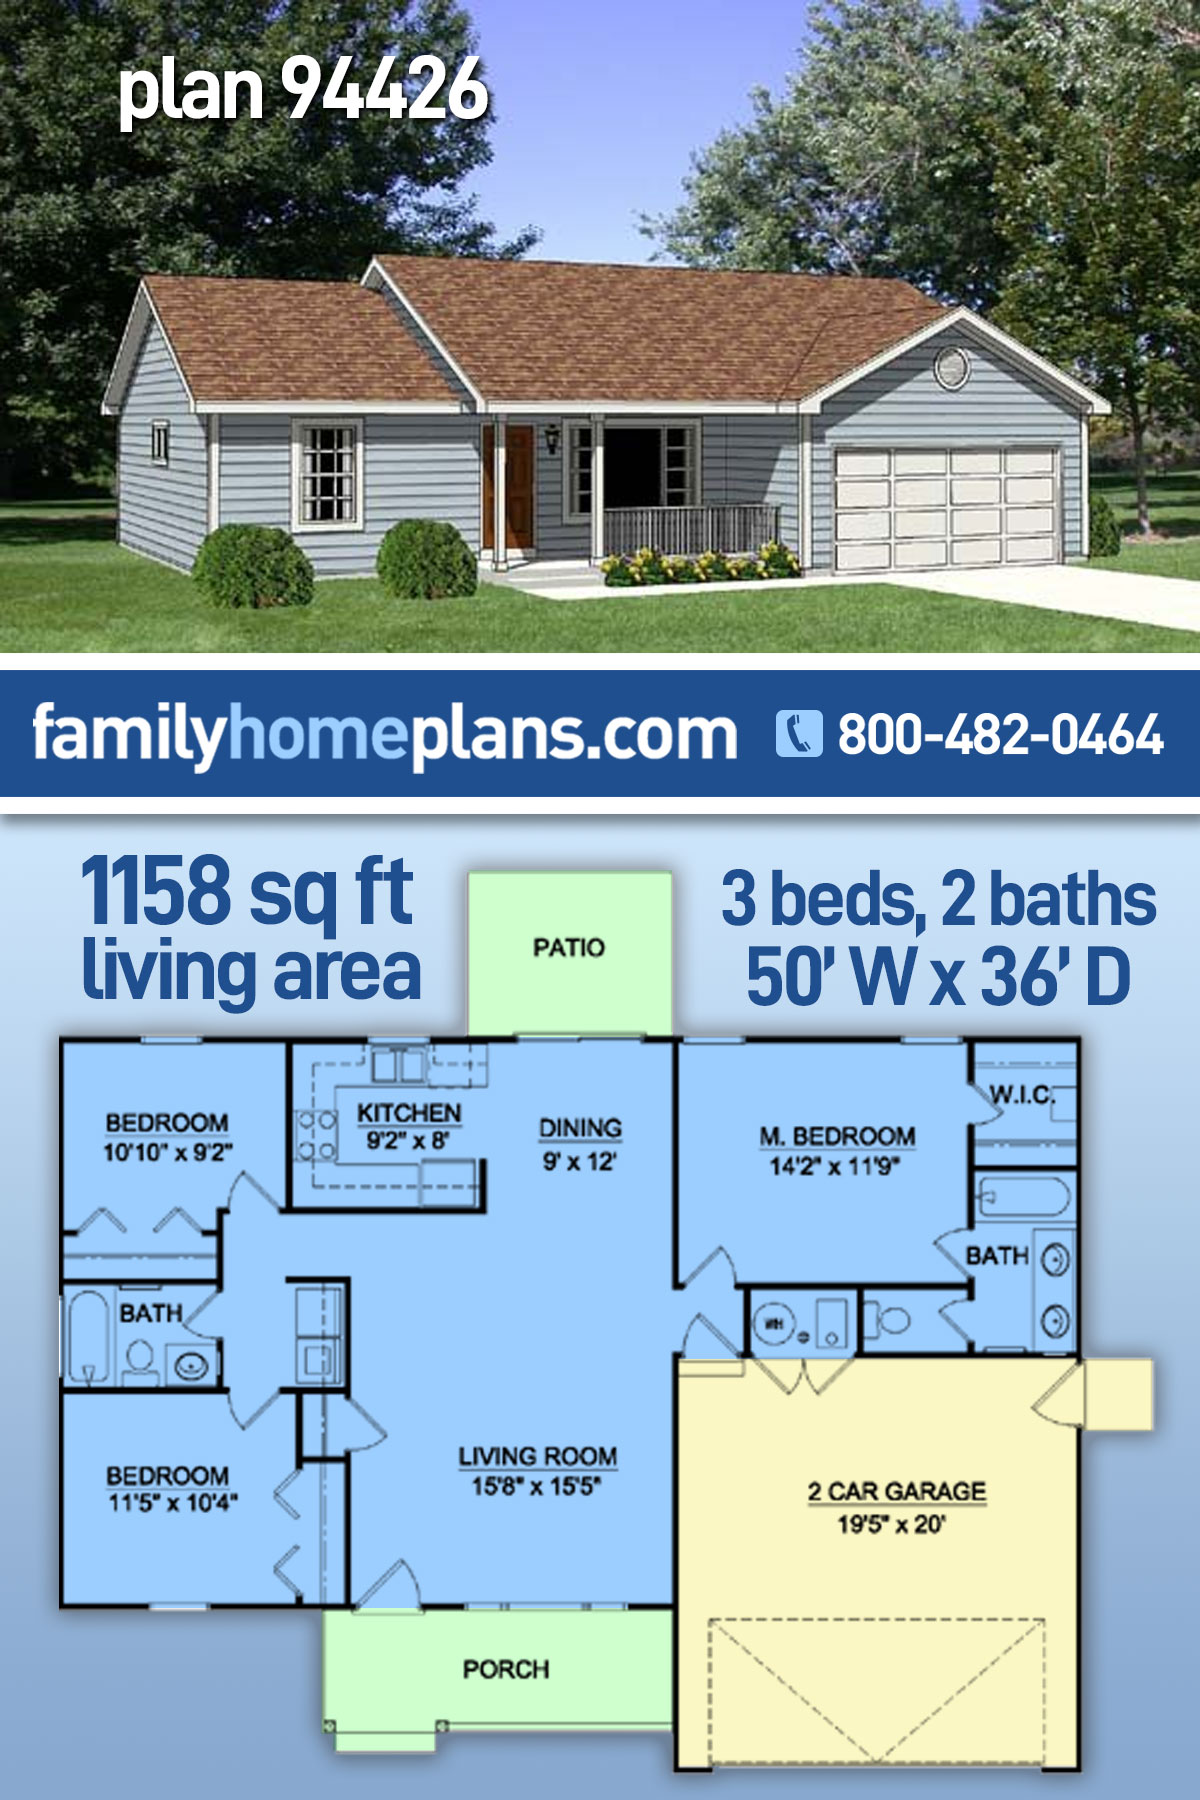 Ranch House Plan 94426 with 3 Beds, 2 Baths, 2 Car Garage